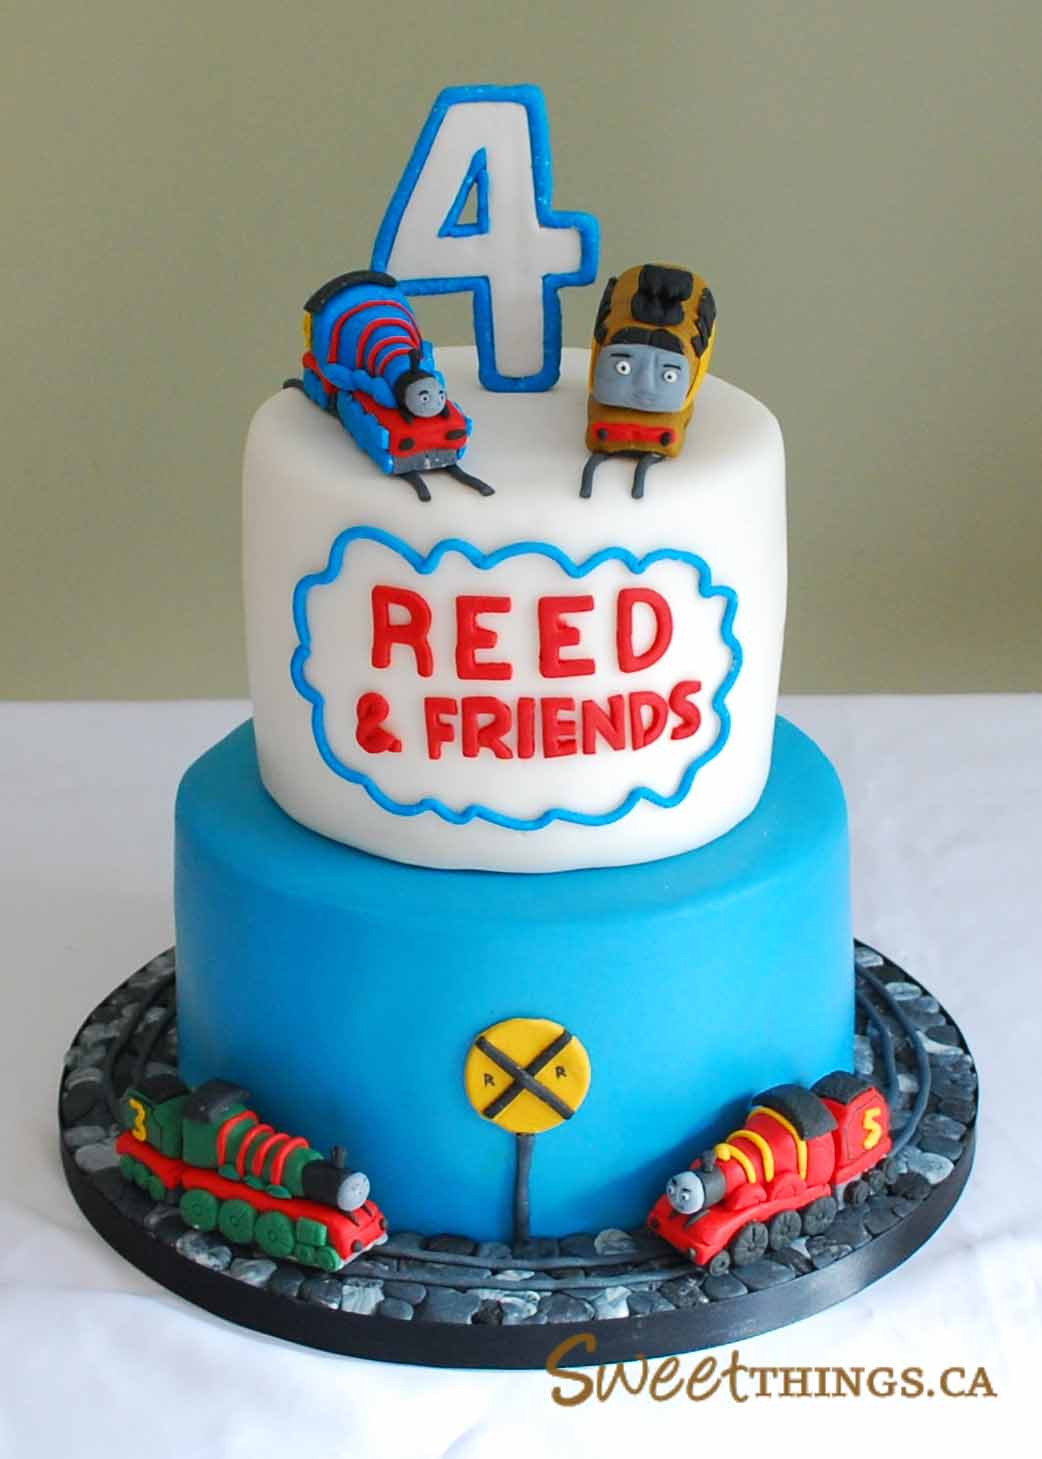 Best ideas about Thomas Birthday Cake . Save or Pin SweetThings 4th Birthday Cake Thomas & Friends Cake Now.